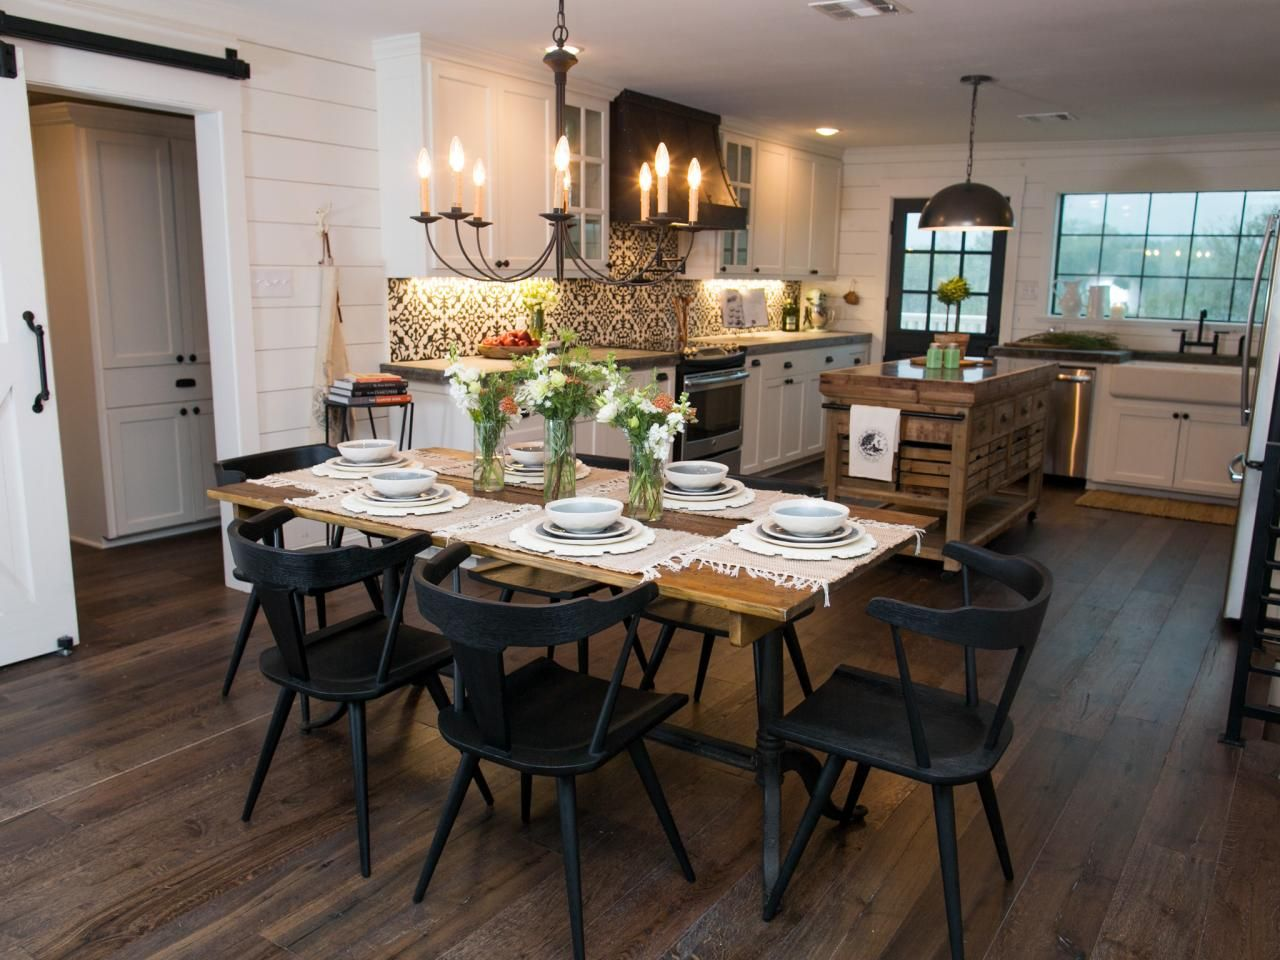 Chip and joanna gaines transform a barn into a rustic home perfect for - In This New Fixer Upper Makeover Chip And Joanna Gaines Take On One Of Their Rustic Barn